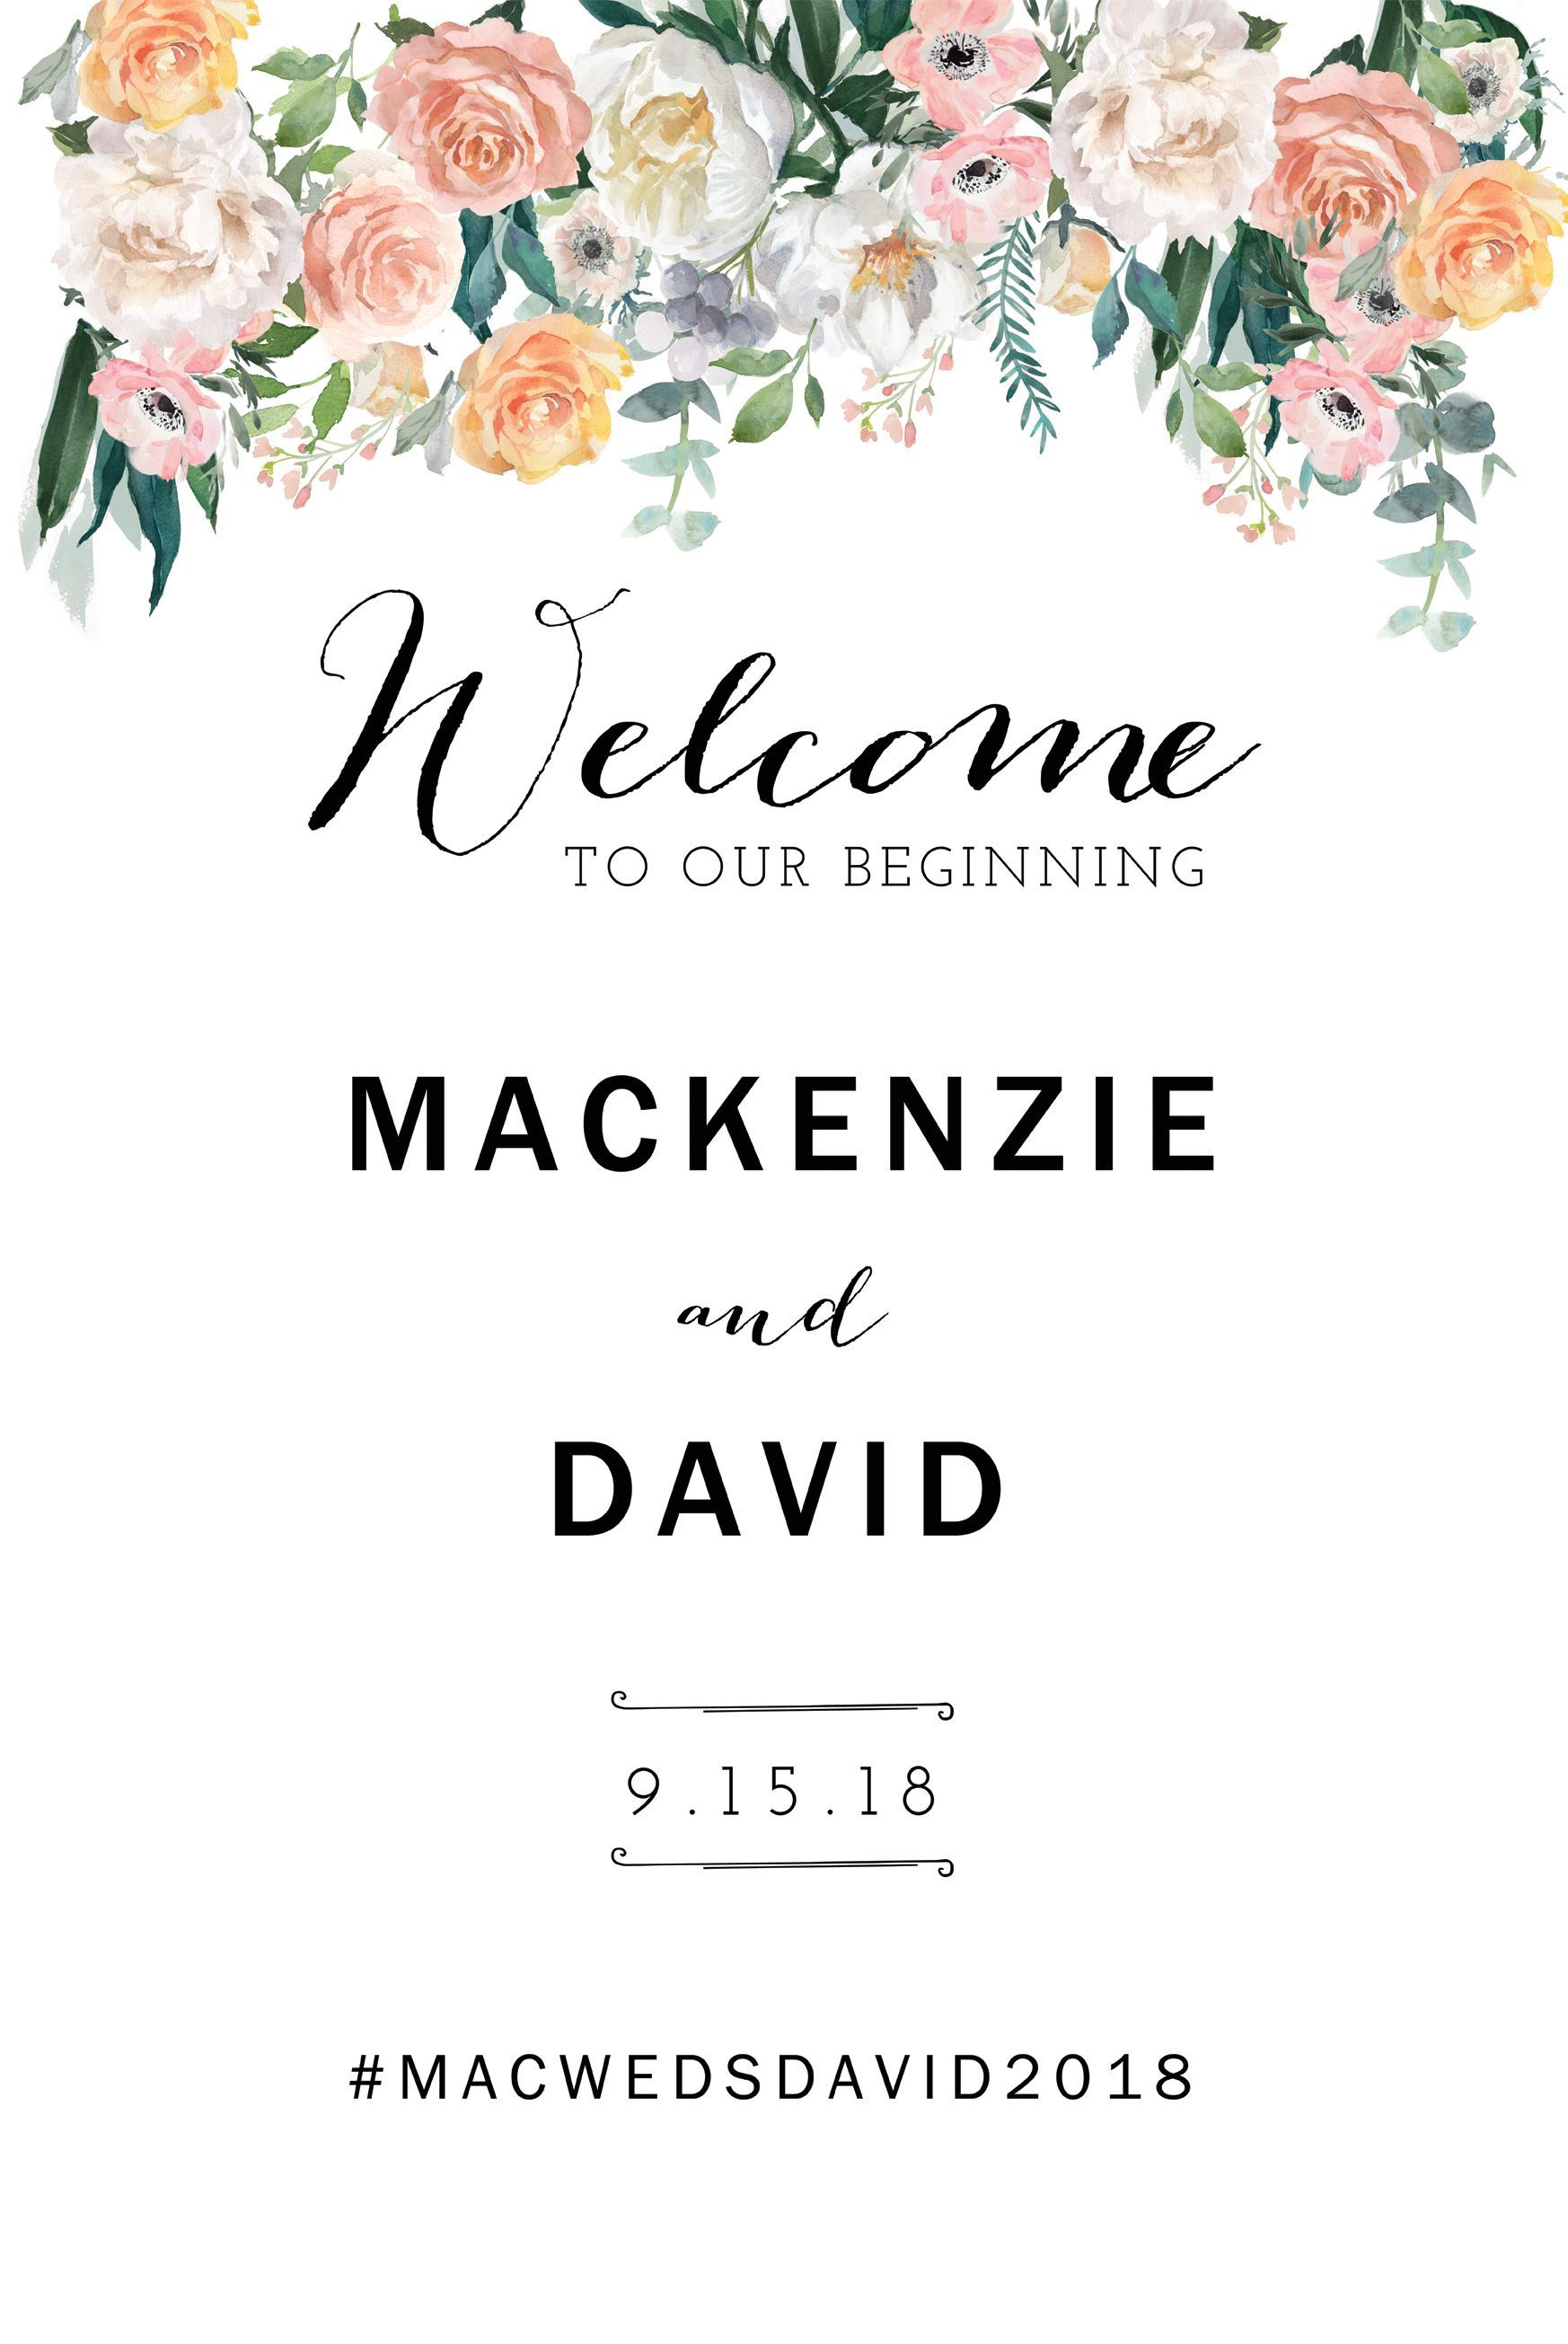 001 Phenomenal Wedding Welcome Sign Template Free High Definition Full